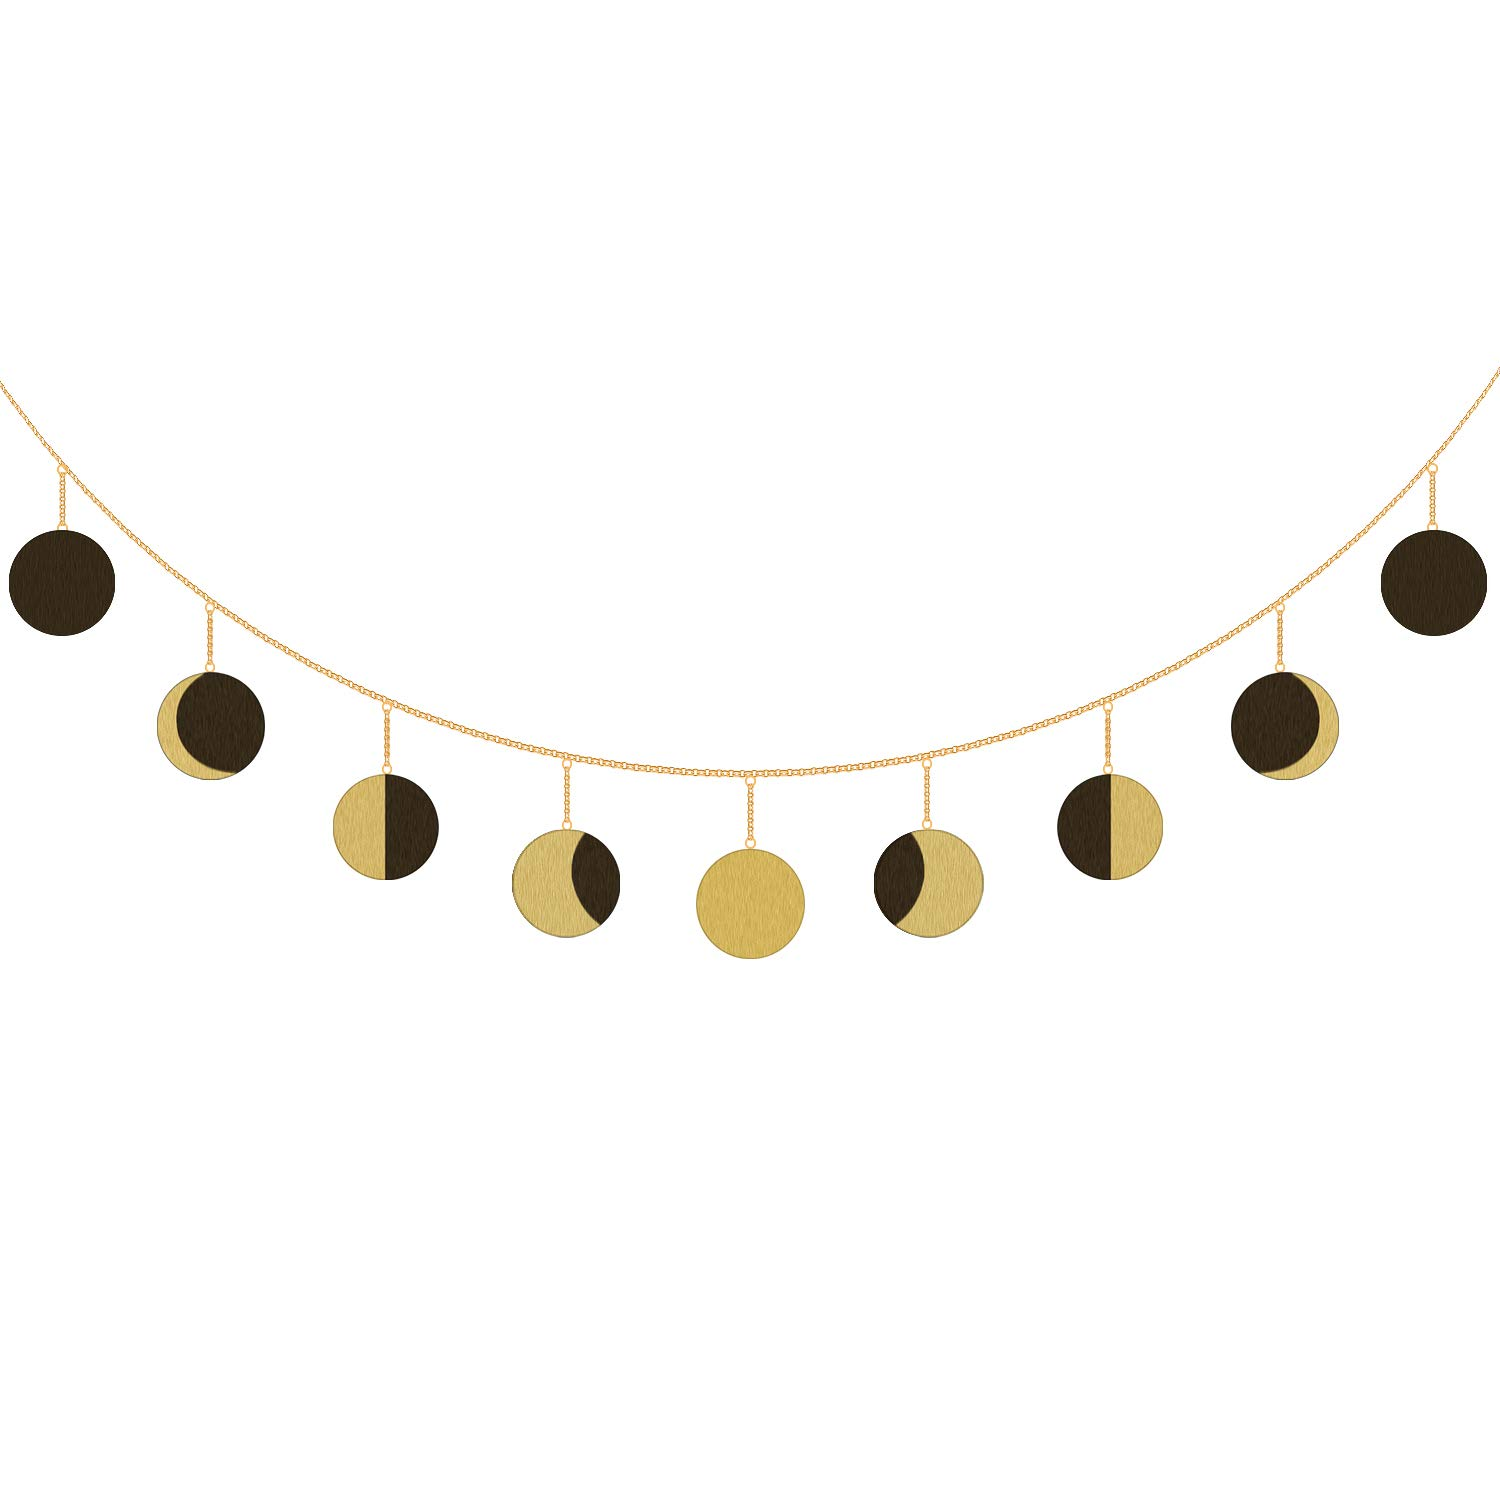 Urban Deco Moon Phase Garland Moon Wall Decor with Gold Chain for Dorm Living Room Bedroom Nursery Home Office (Gold-Horizontal)